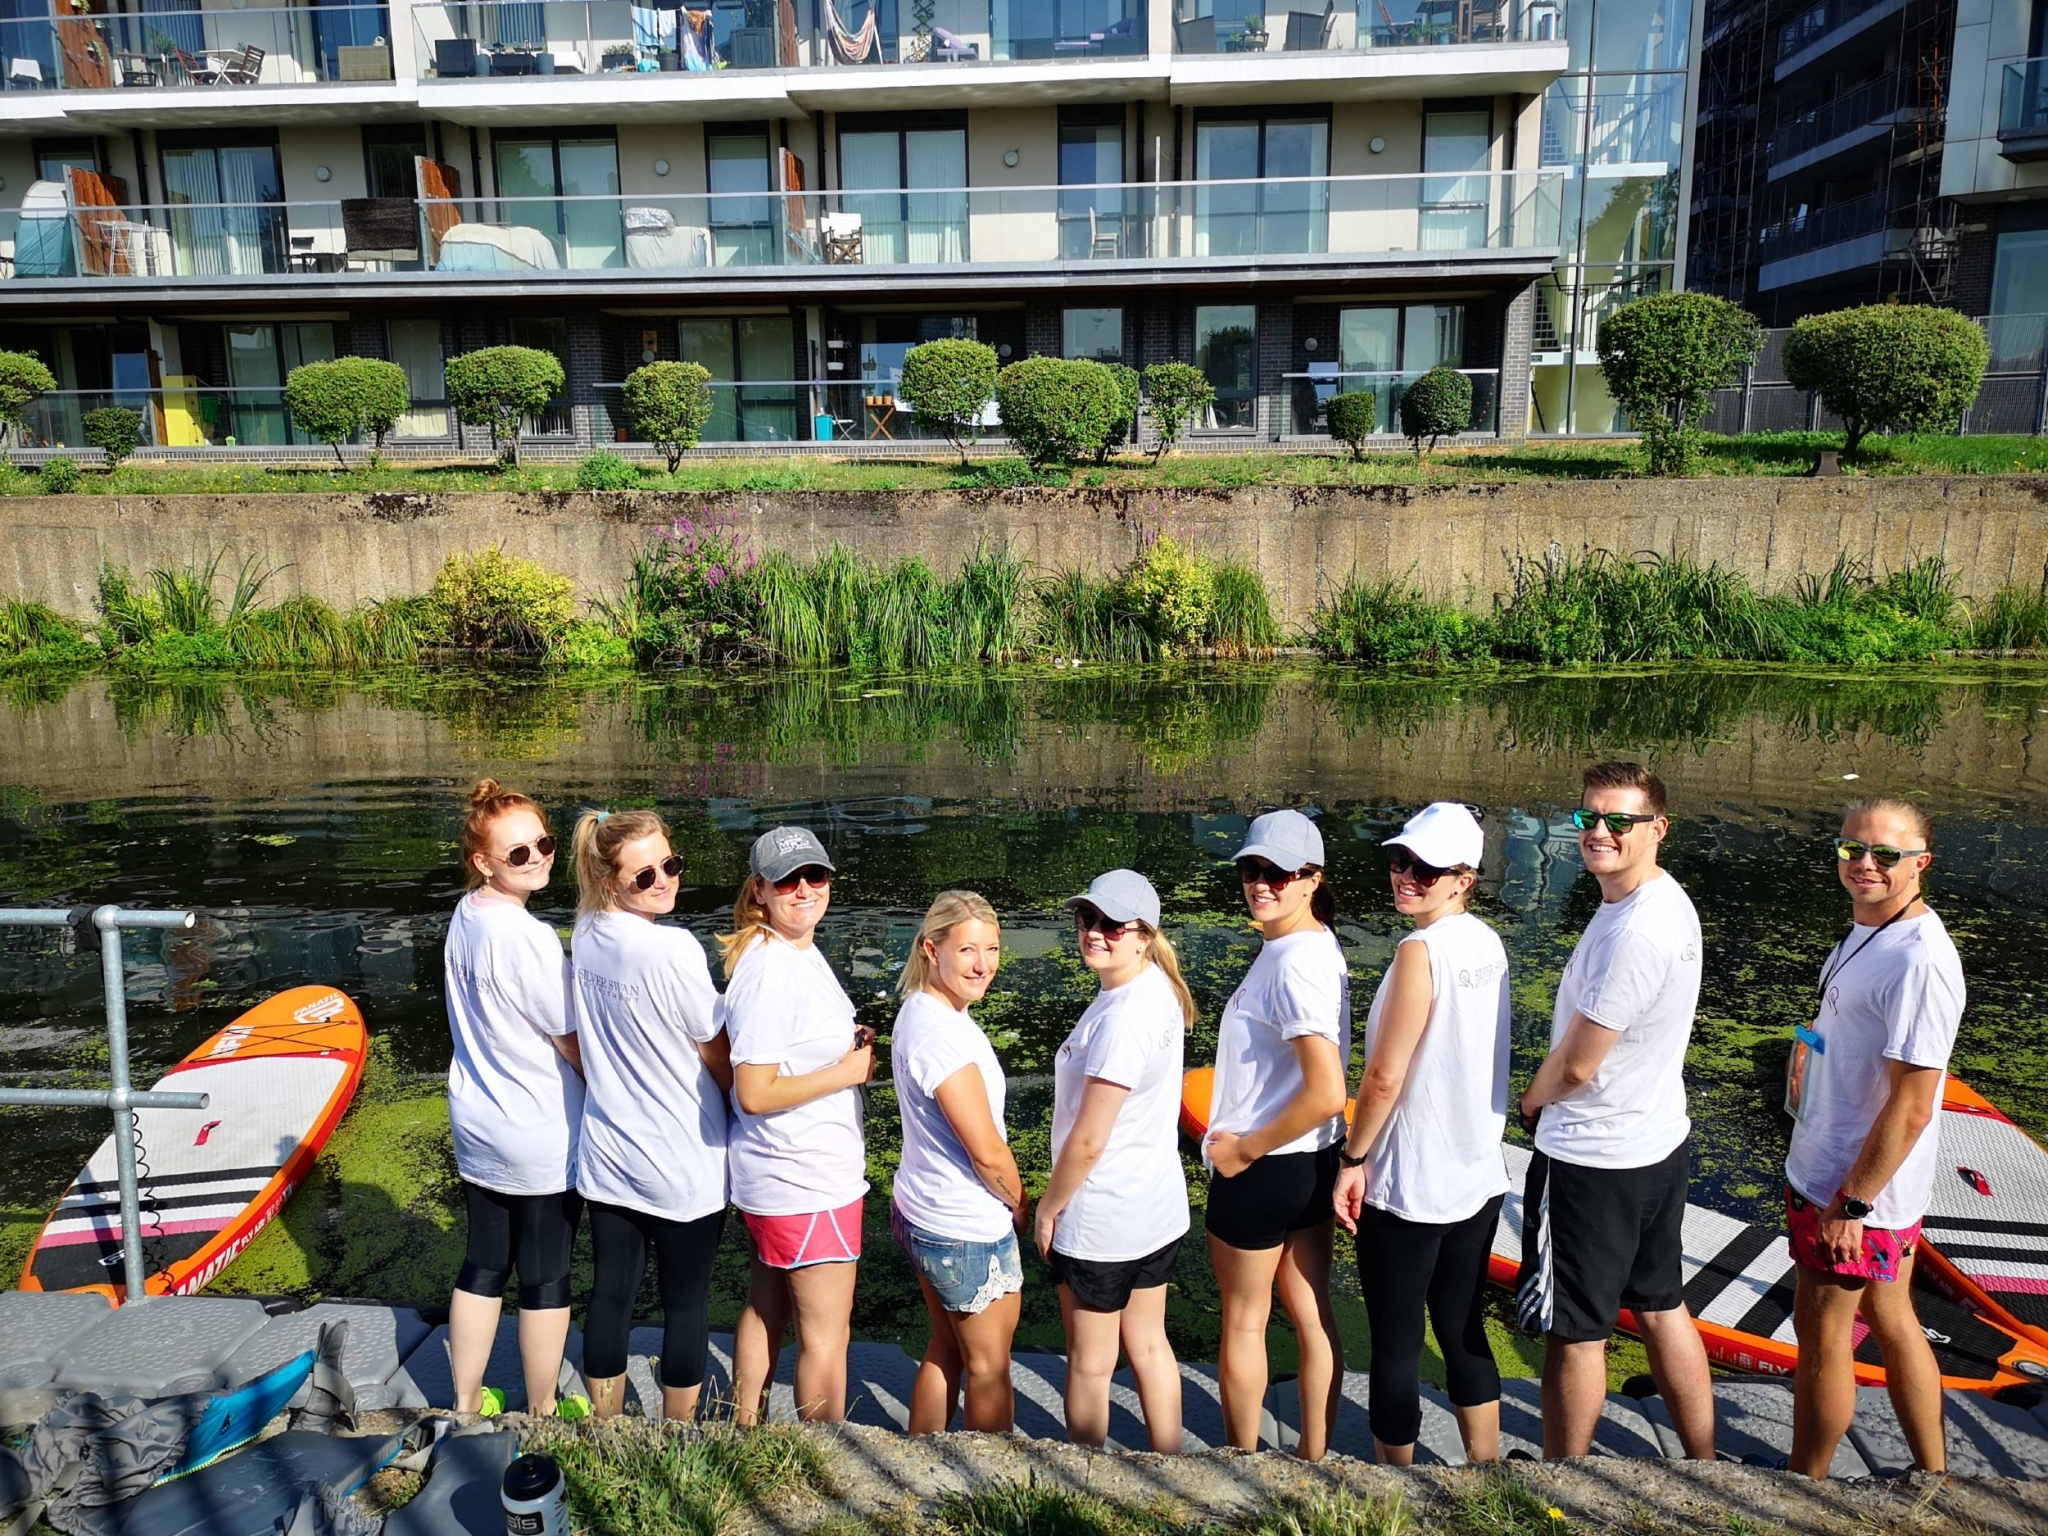 9 of the Silver Swan team standing on the edge of the canal at Limehouse London with paddle-boards in the water